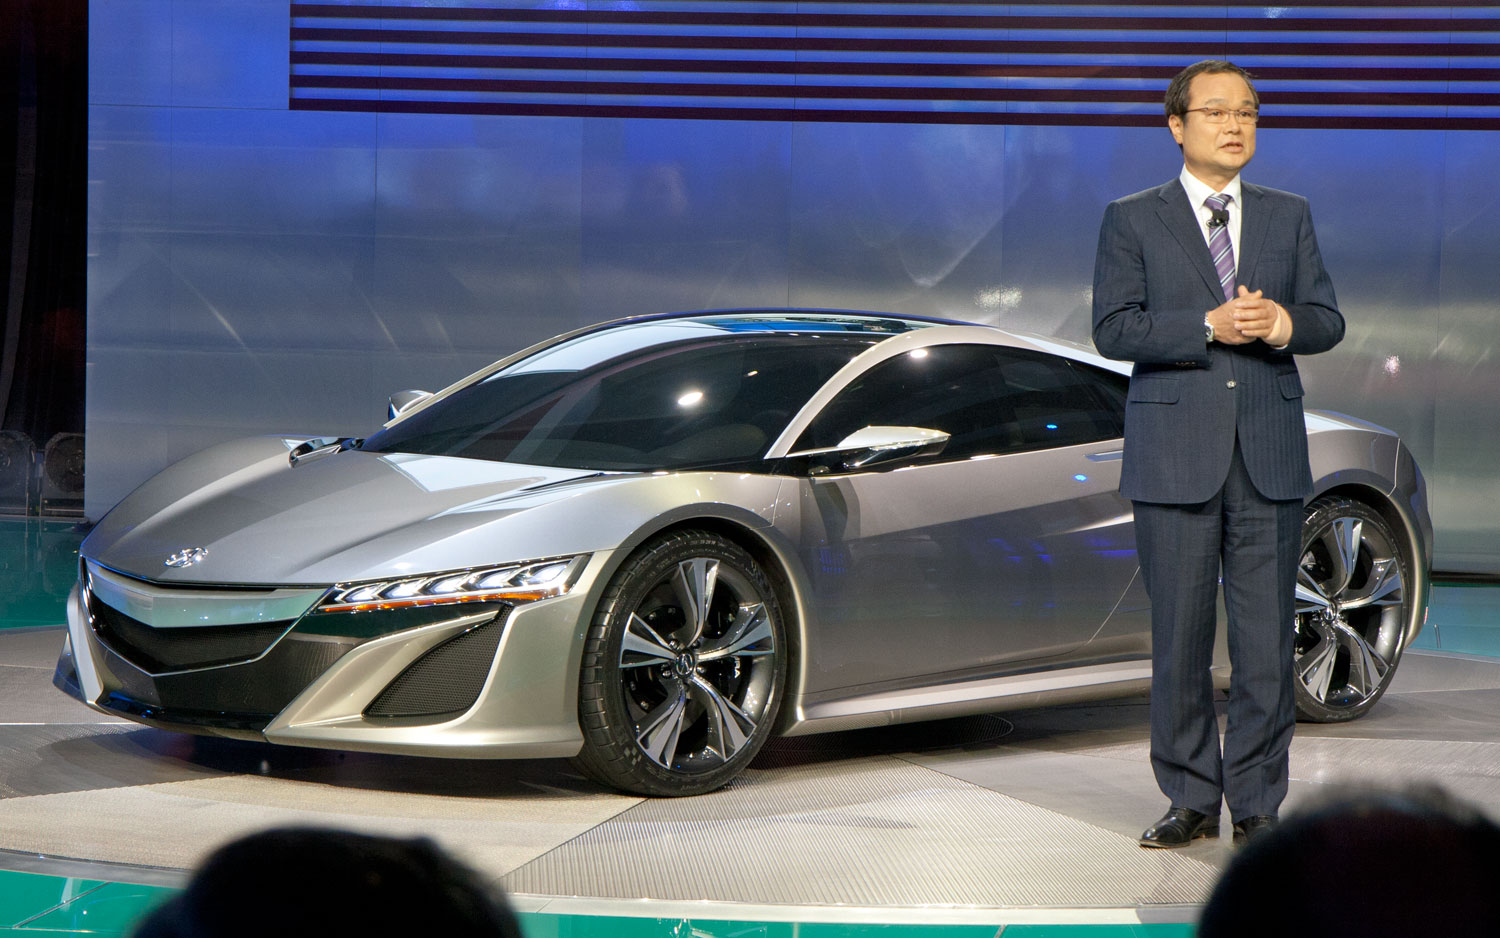 Acura NSX Concept With Honda CEO Ito1